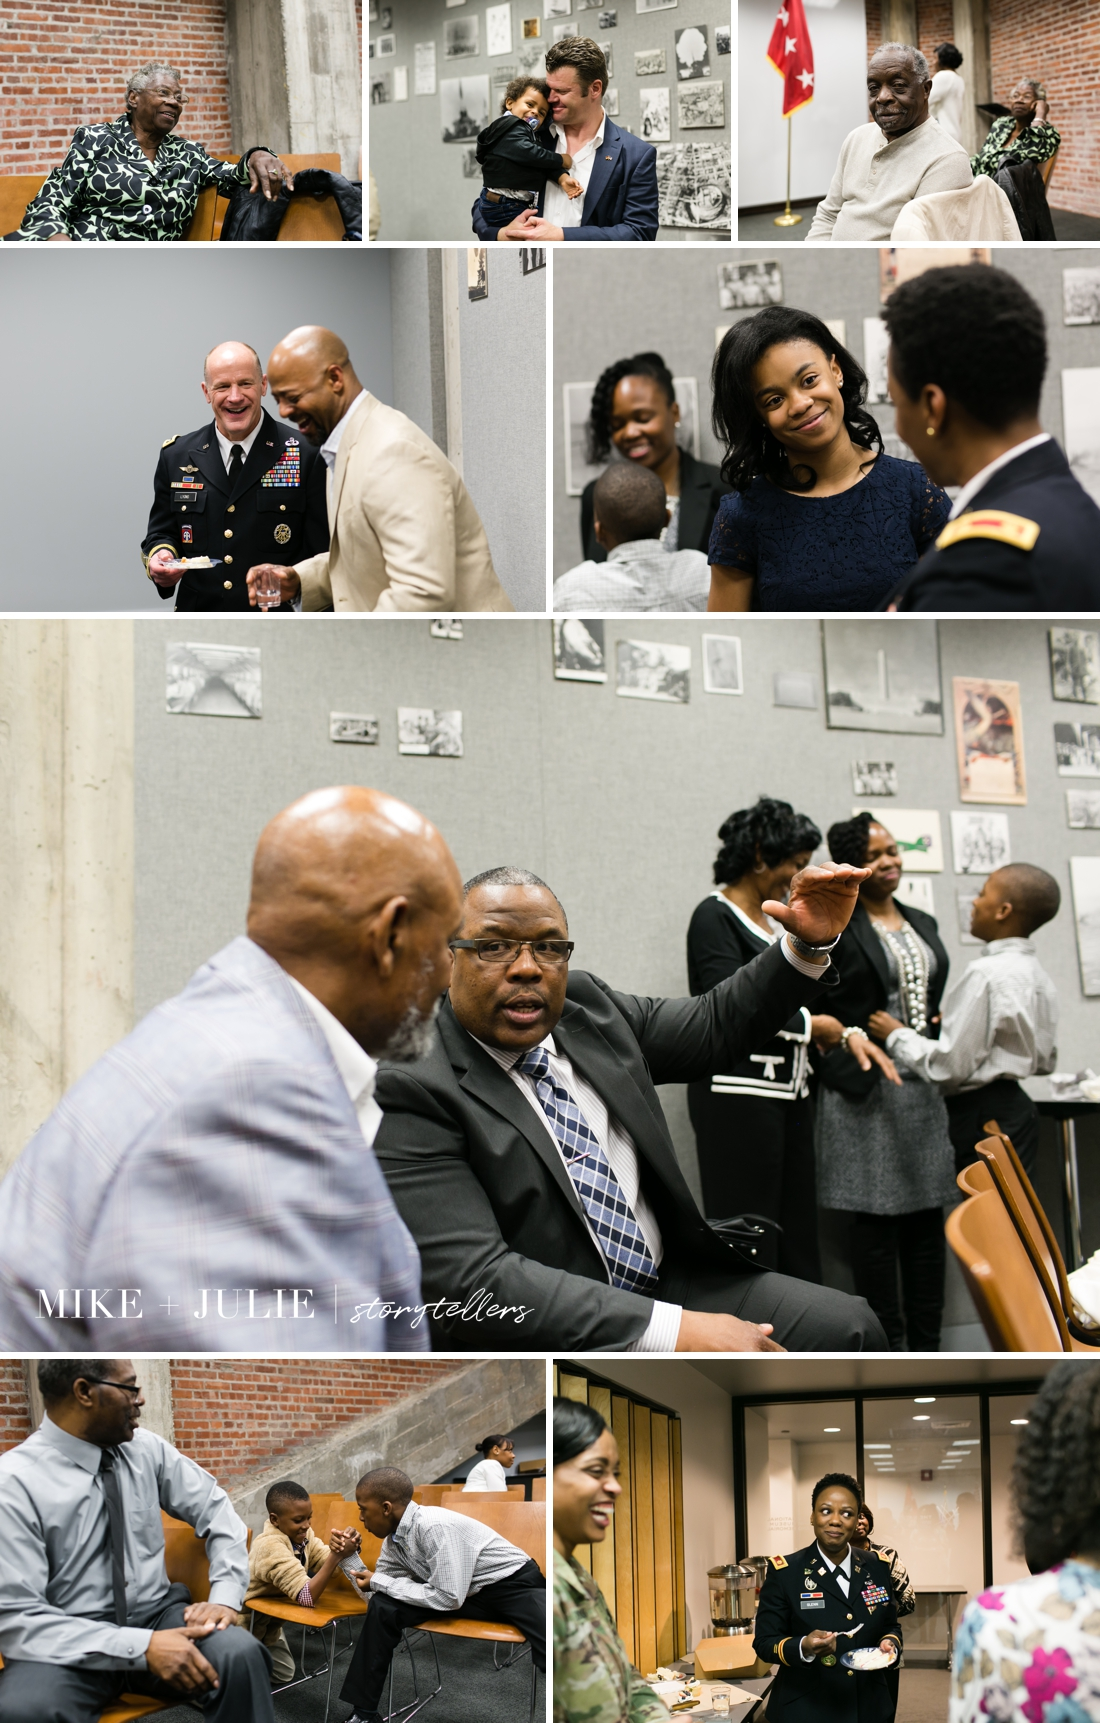 Kansas City Liberty Memorial heartfelt United States Army promotion ceremony documentary story picture